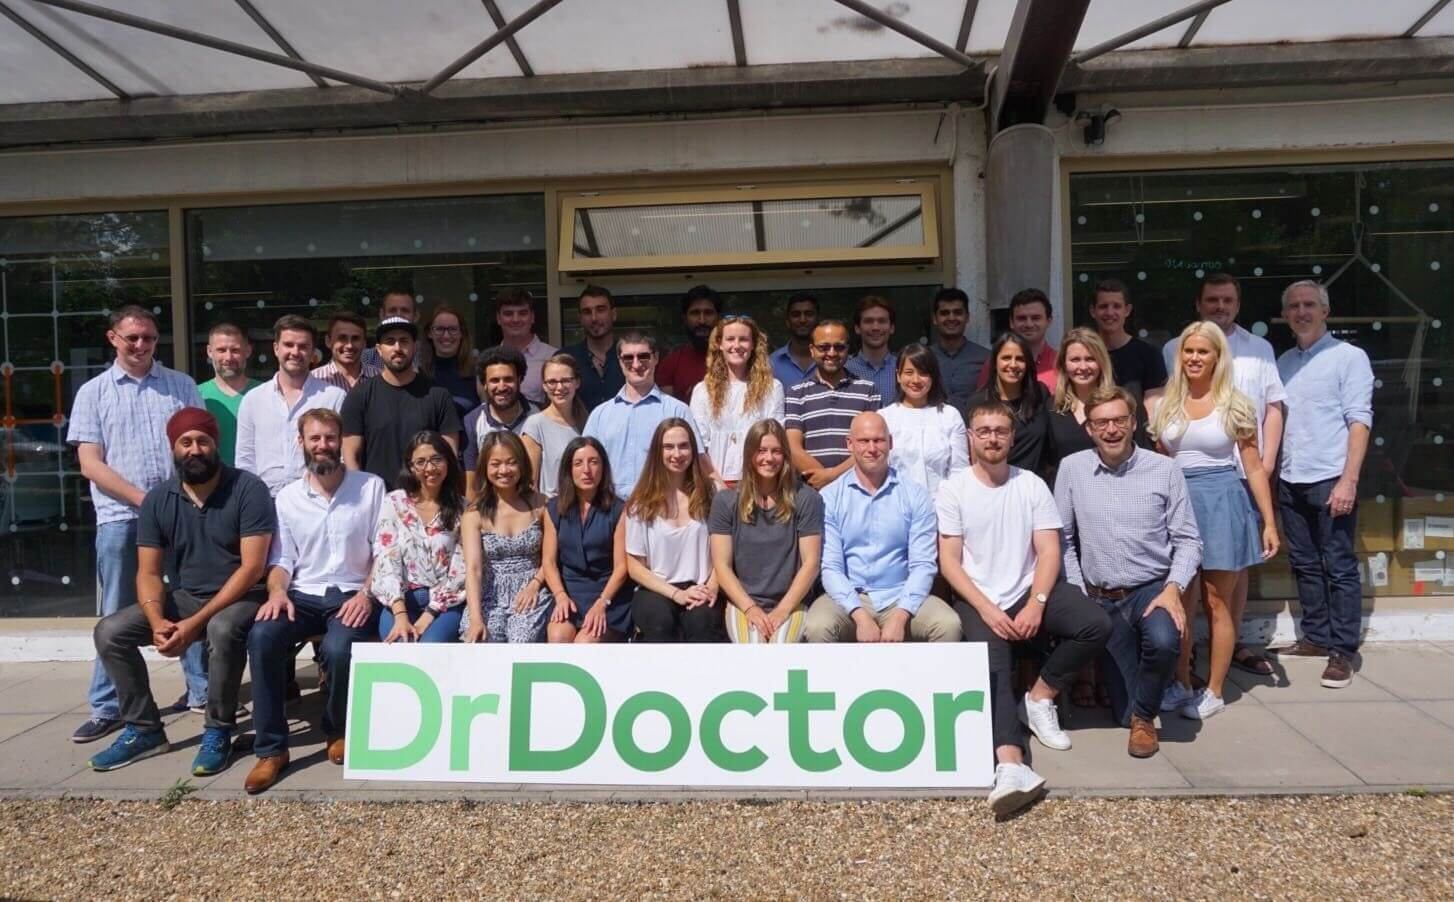 drdoctor-team